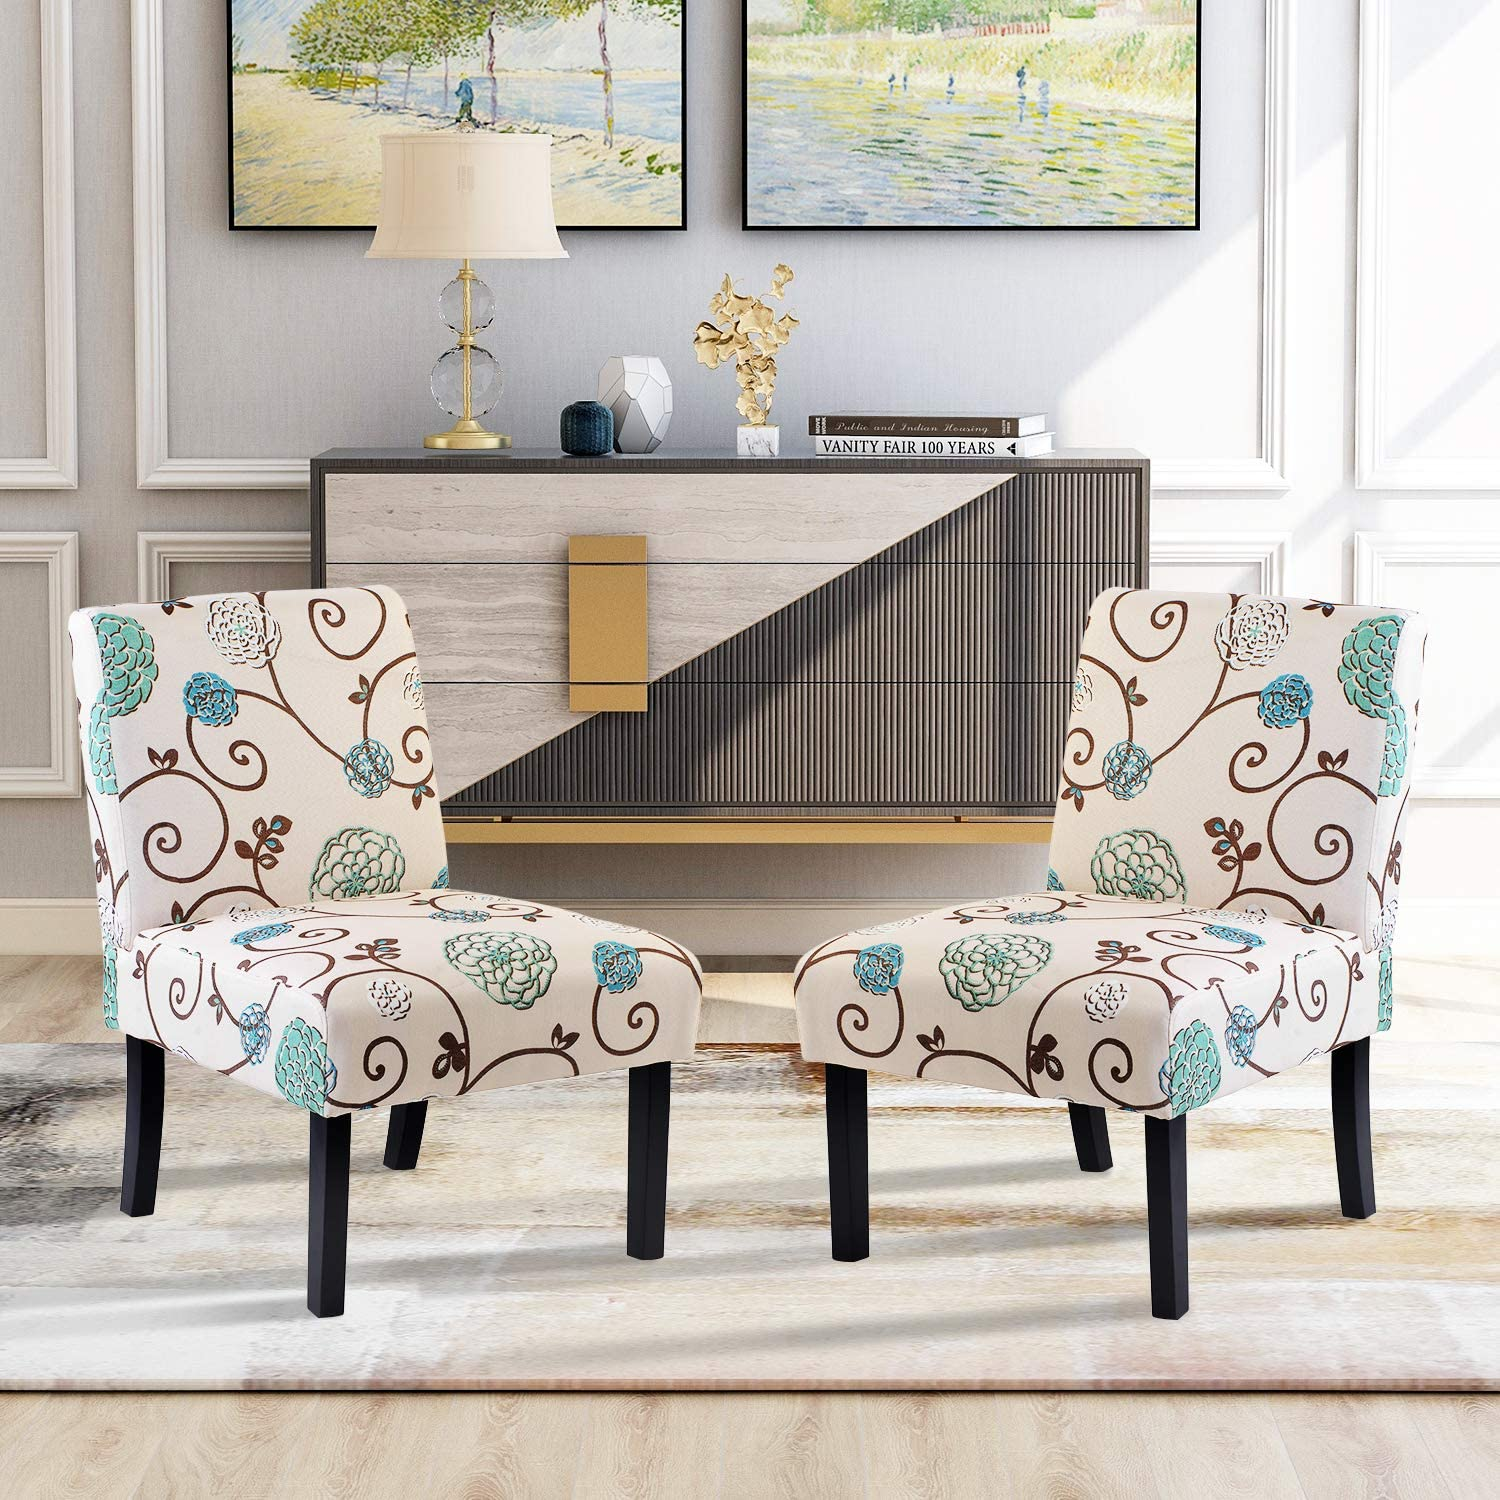 Accent Chair Set Of 2 Armless Accent Chairs For Living Room Entryway Bedroom Armless Slipper Chair Set Of 2 Fabric Kitchen Dining